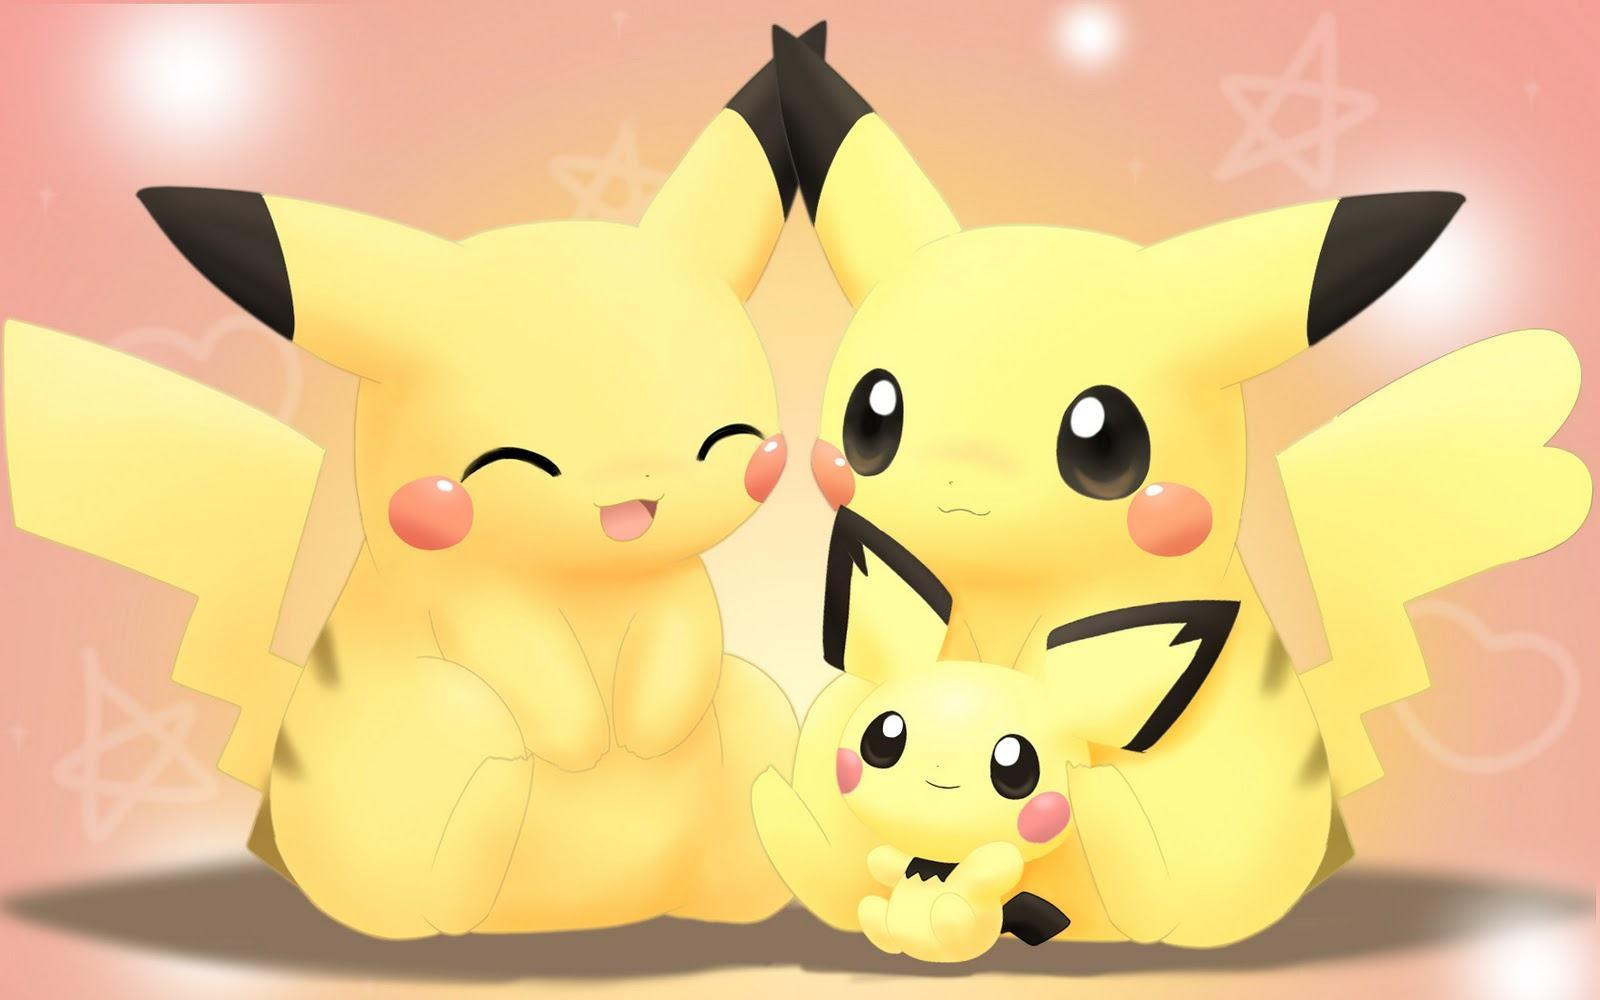 Cute Pokemon Backgrounds - Wallpaper Cave